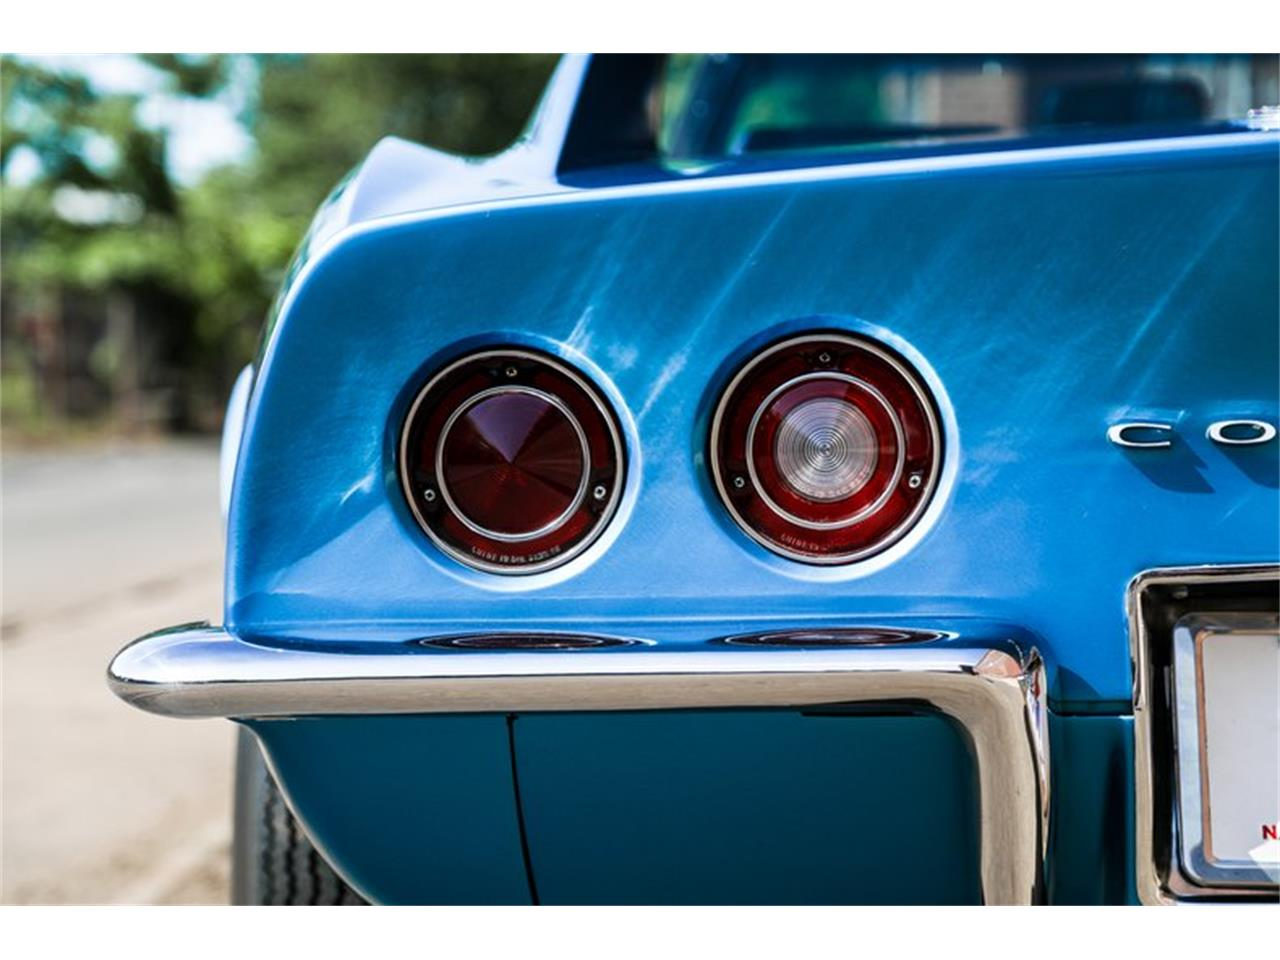 1969 Chevrolet Corvette for sale in Wallingford, CT – photo 77